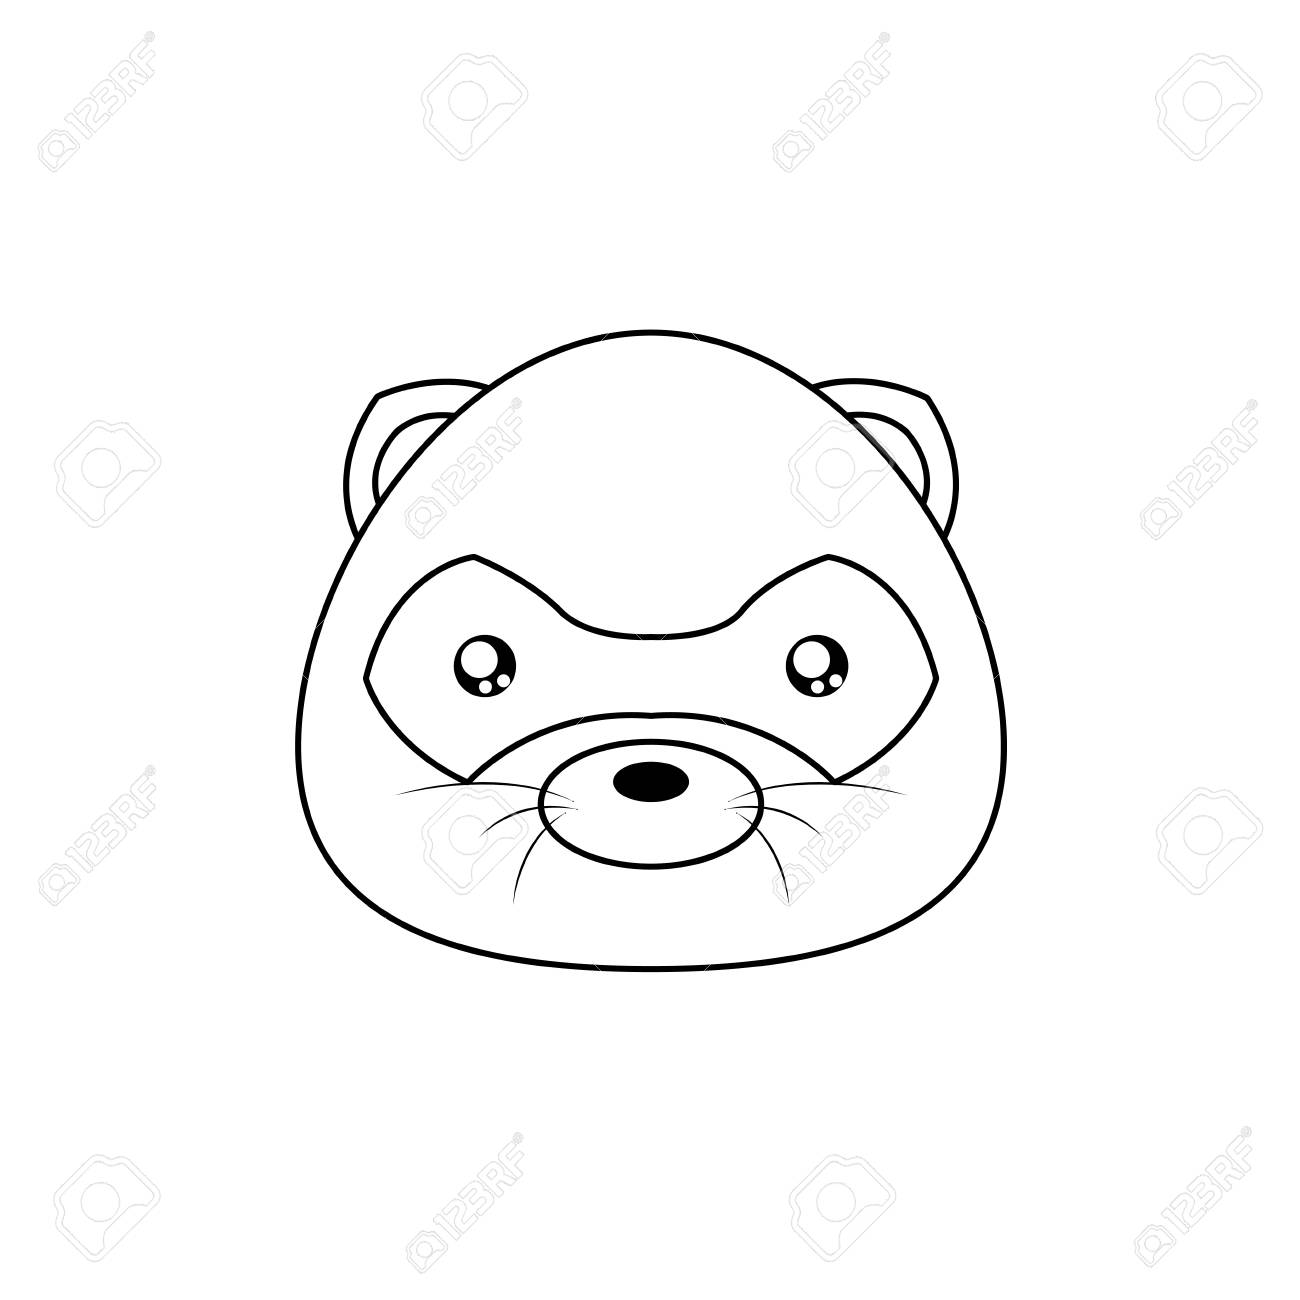 Opossum Drawing Face Royalty Free Cliparts Vectors And Stock